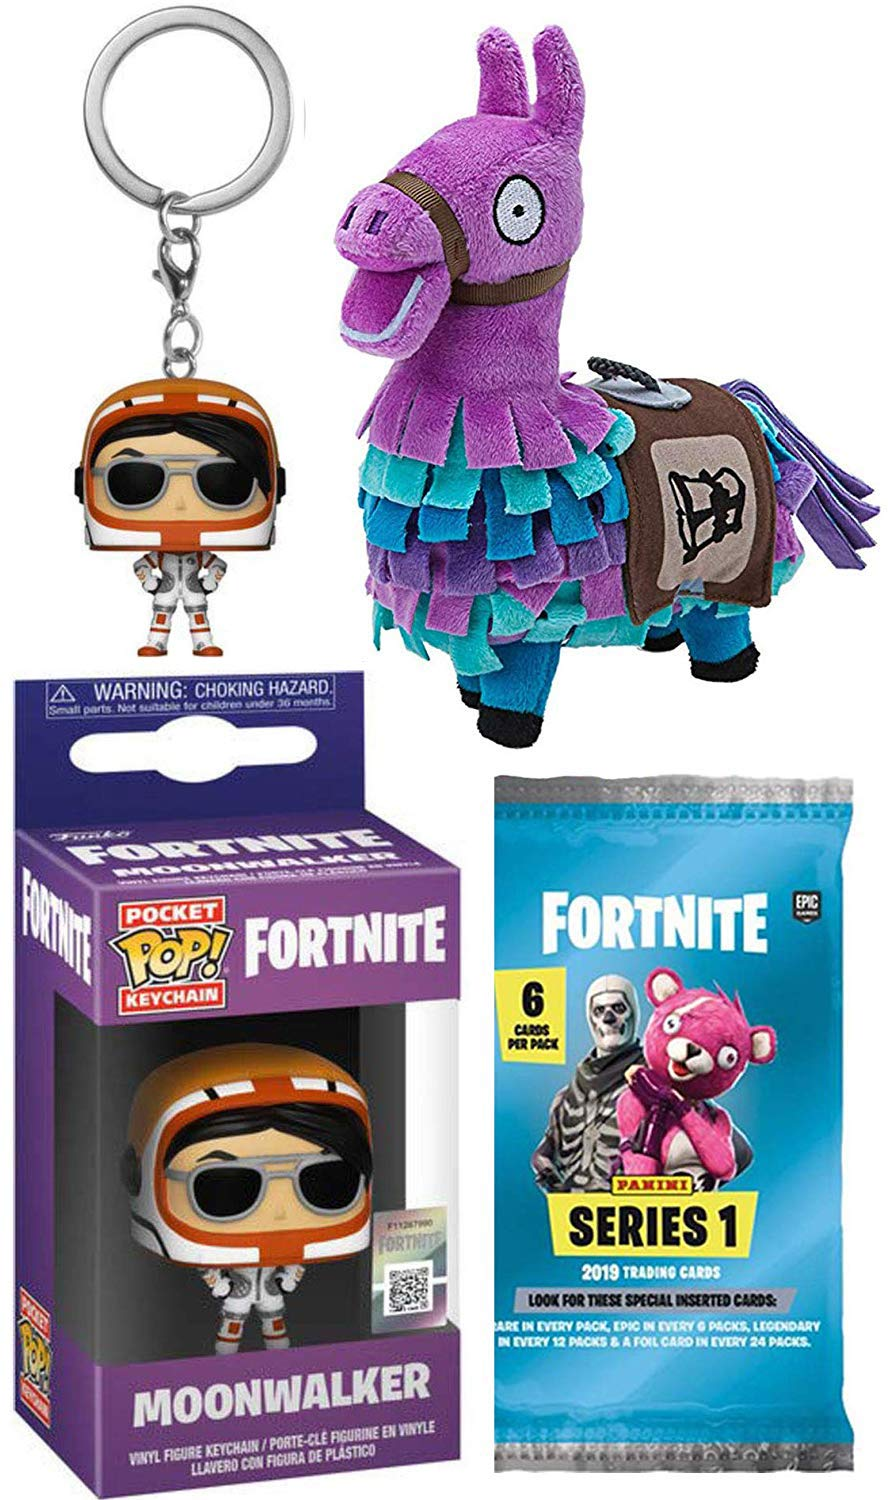 Amazon.com: Fortnite Moon Gamer Series Moonwalker Mini ...